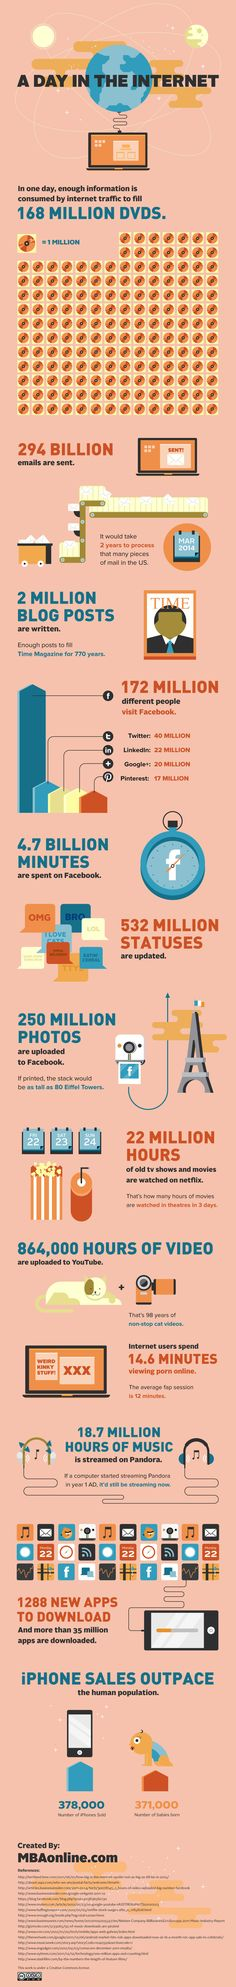 [INFOGRAPHIC] A Day in the Life of the Internet